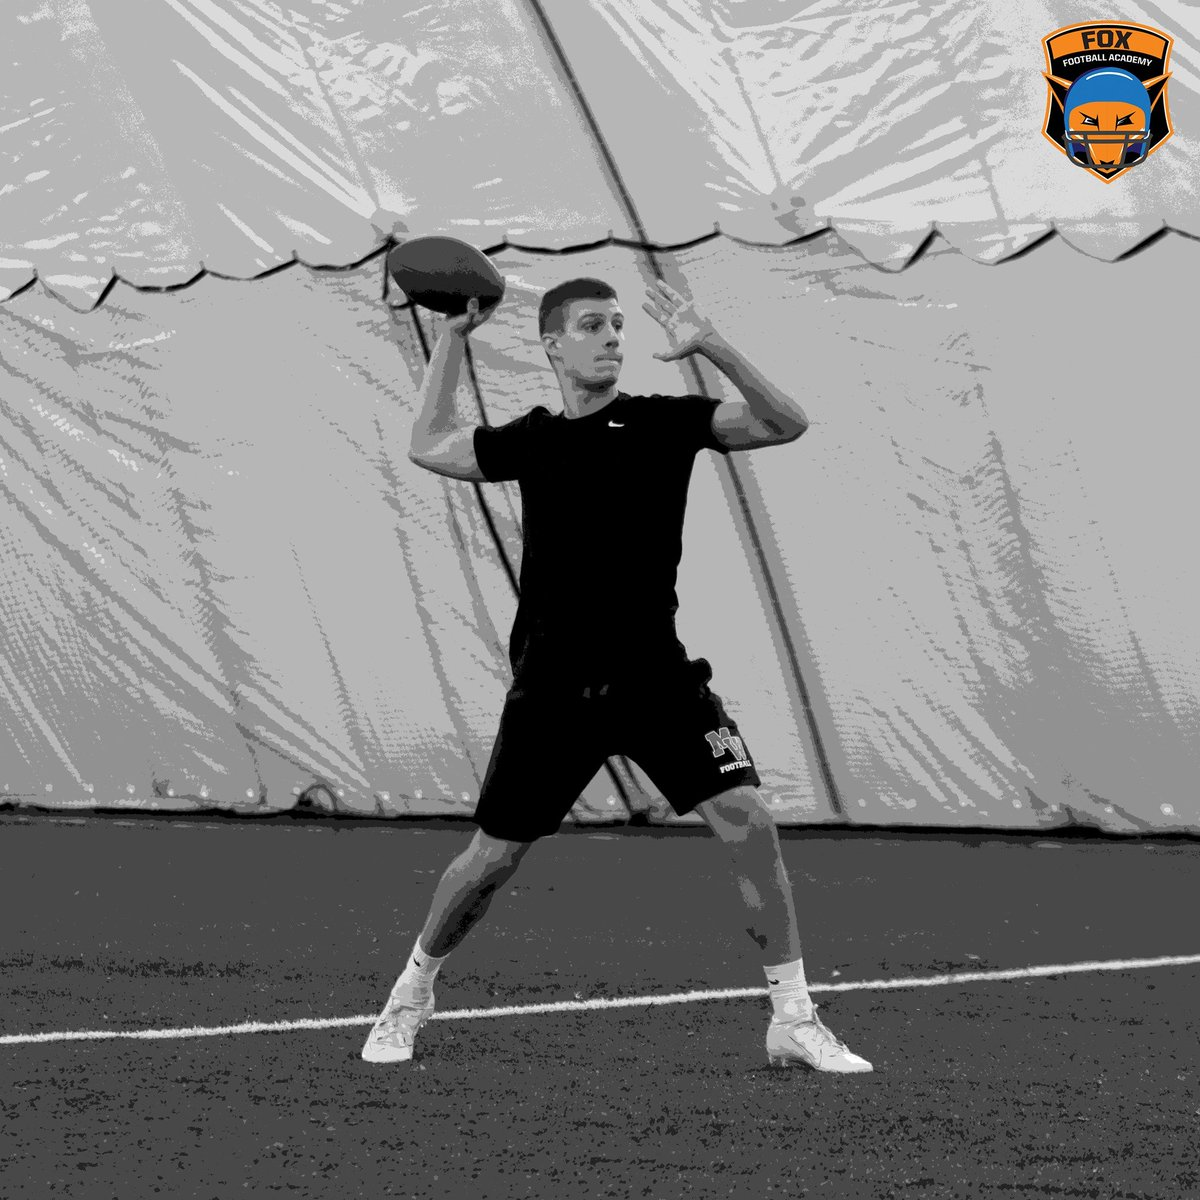 Receive elite #Quarterback training this Sunday at HSC! Spots are limited for our #footballtraining. Sign up using the links below:  Session 1: 1PM to 2PM https://www.hudsonsportscomplex.com/events-1/quarterback-training-session-1…  Session 2: 2PM to 3PM https://www.hudsonsportscomplex.com/events-1/quarterback-training-session-2…  Session 3: 3PM to 4PM https://www.hudsonsportscomplex.com/events-1/quarterback-training-session-3…pic.twitter.com/x8BHVe7E7w